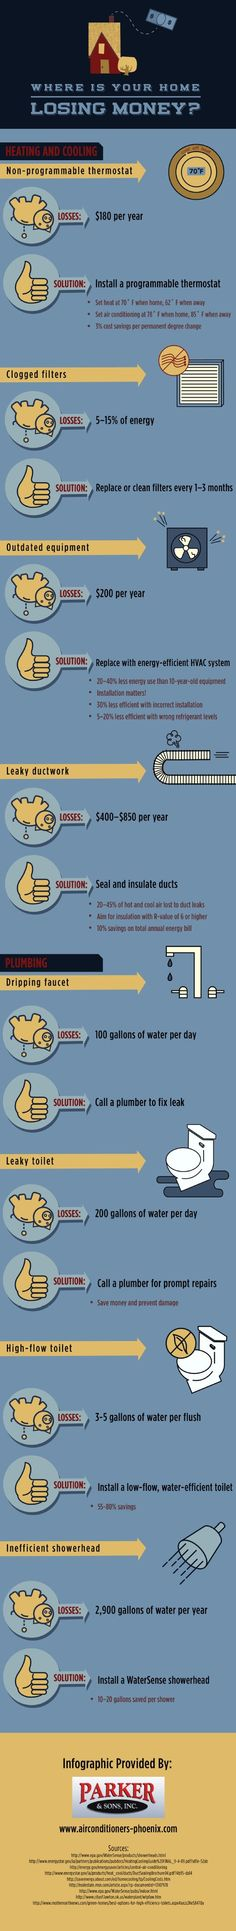 Infographic Ideas infographics indianapolis : 1000+ images about work blog ideas on Pinterest | Home inspection ...